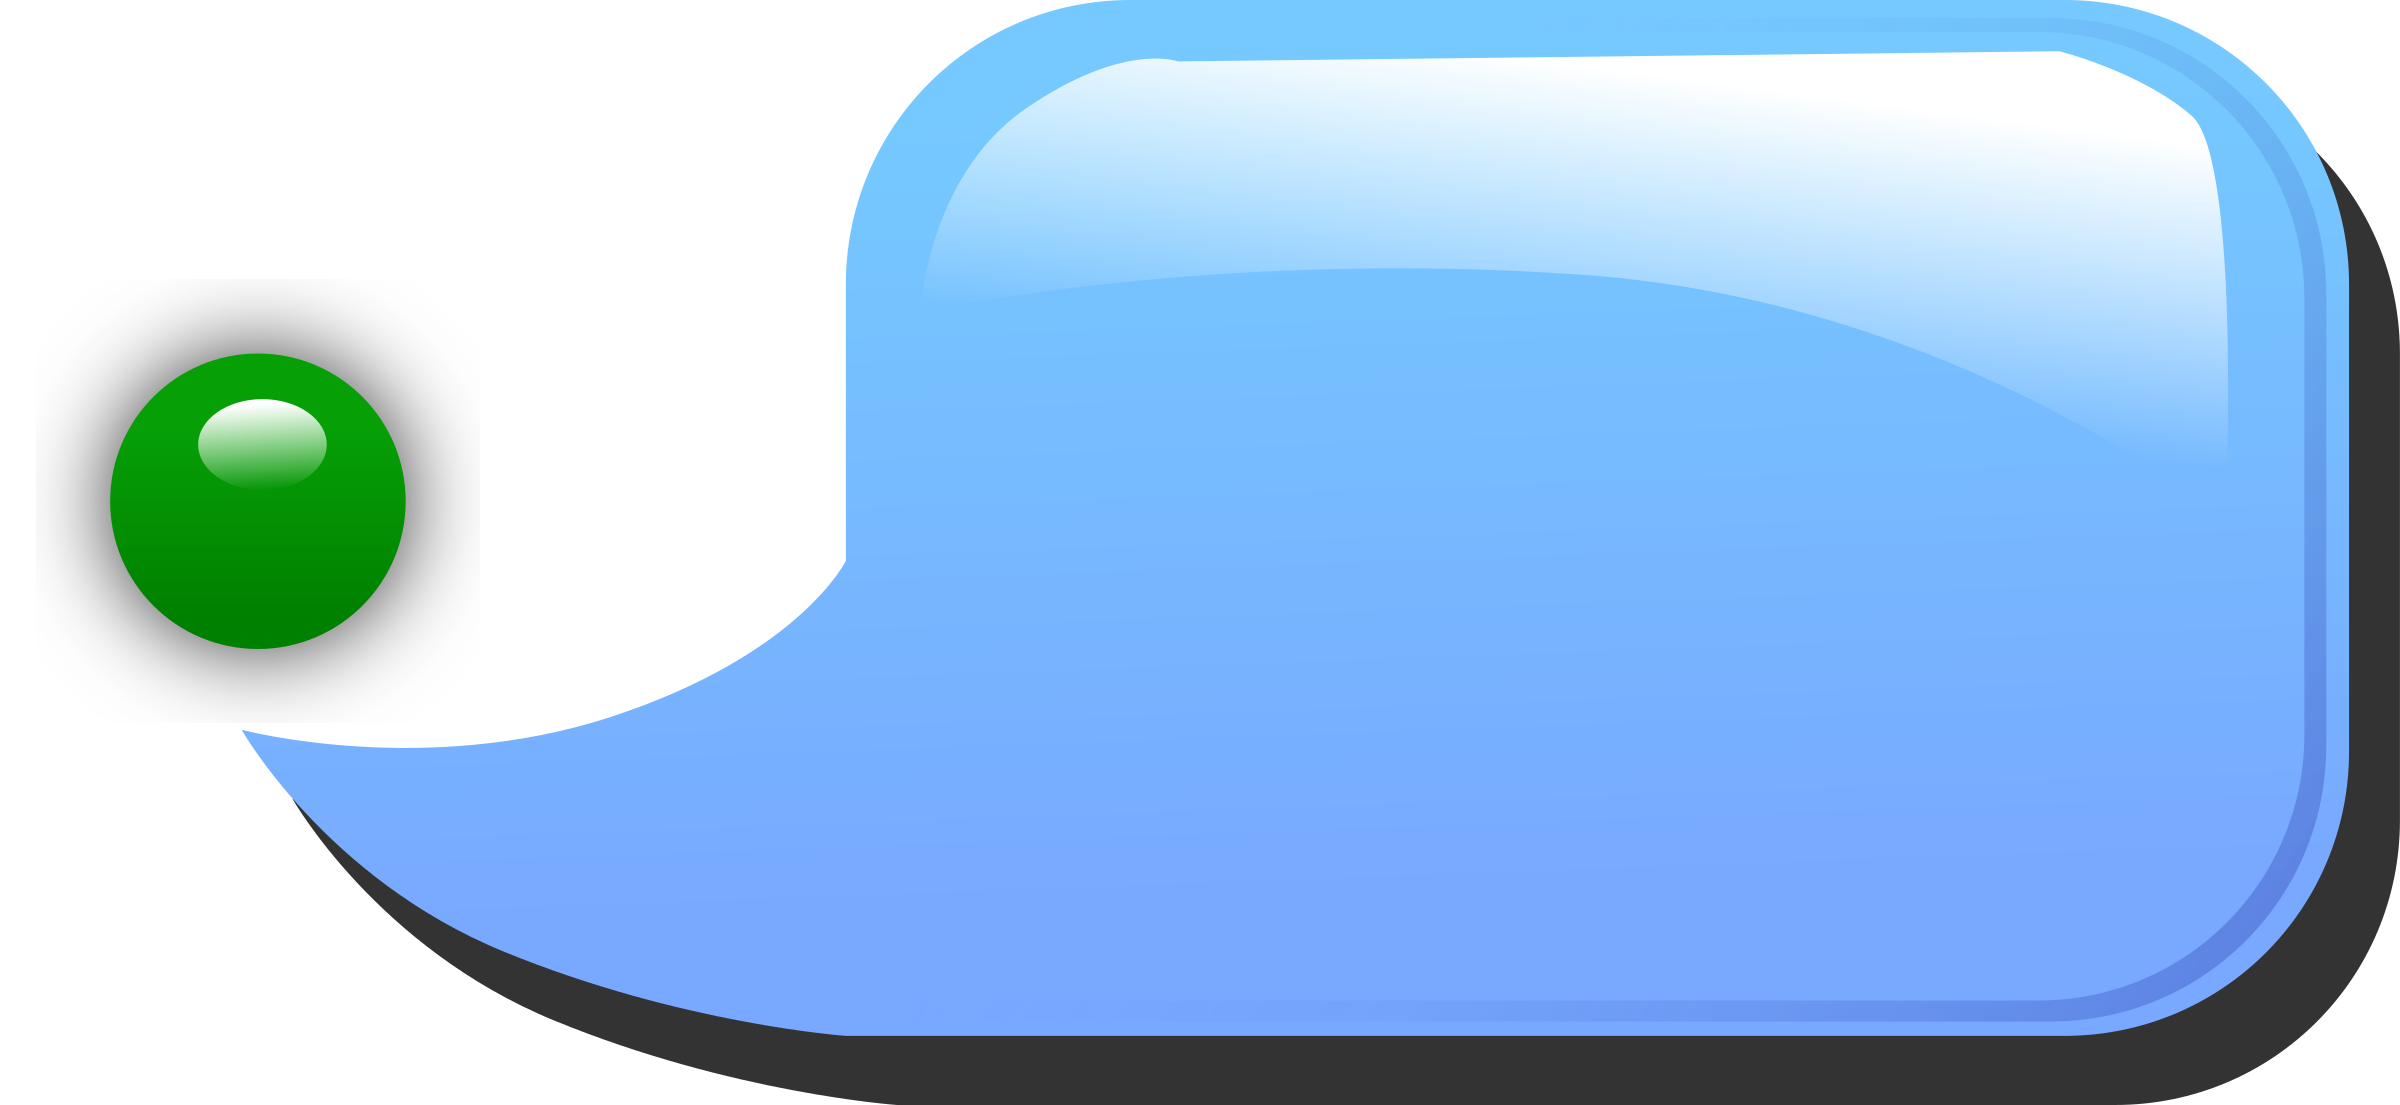 Chat Transparent PNG Image